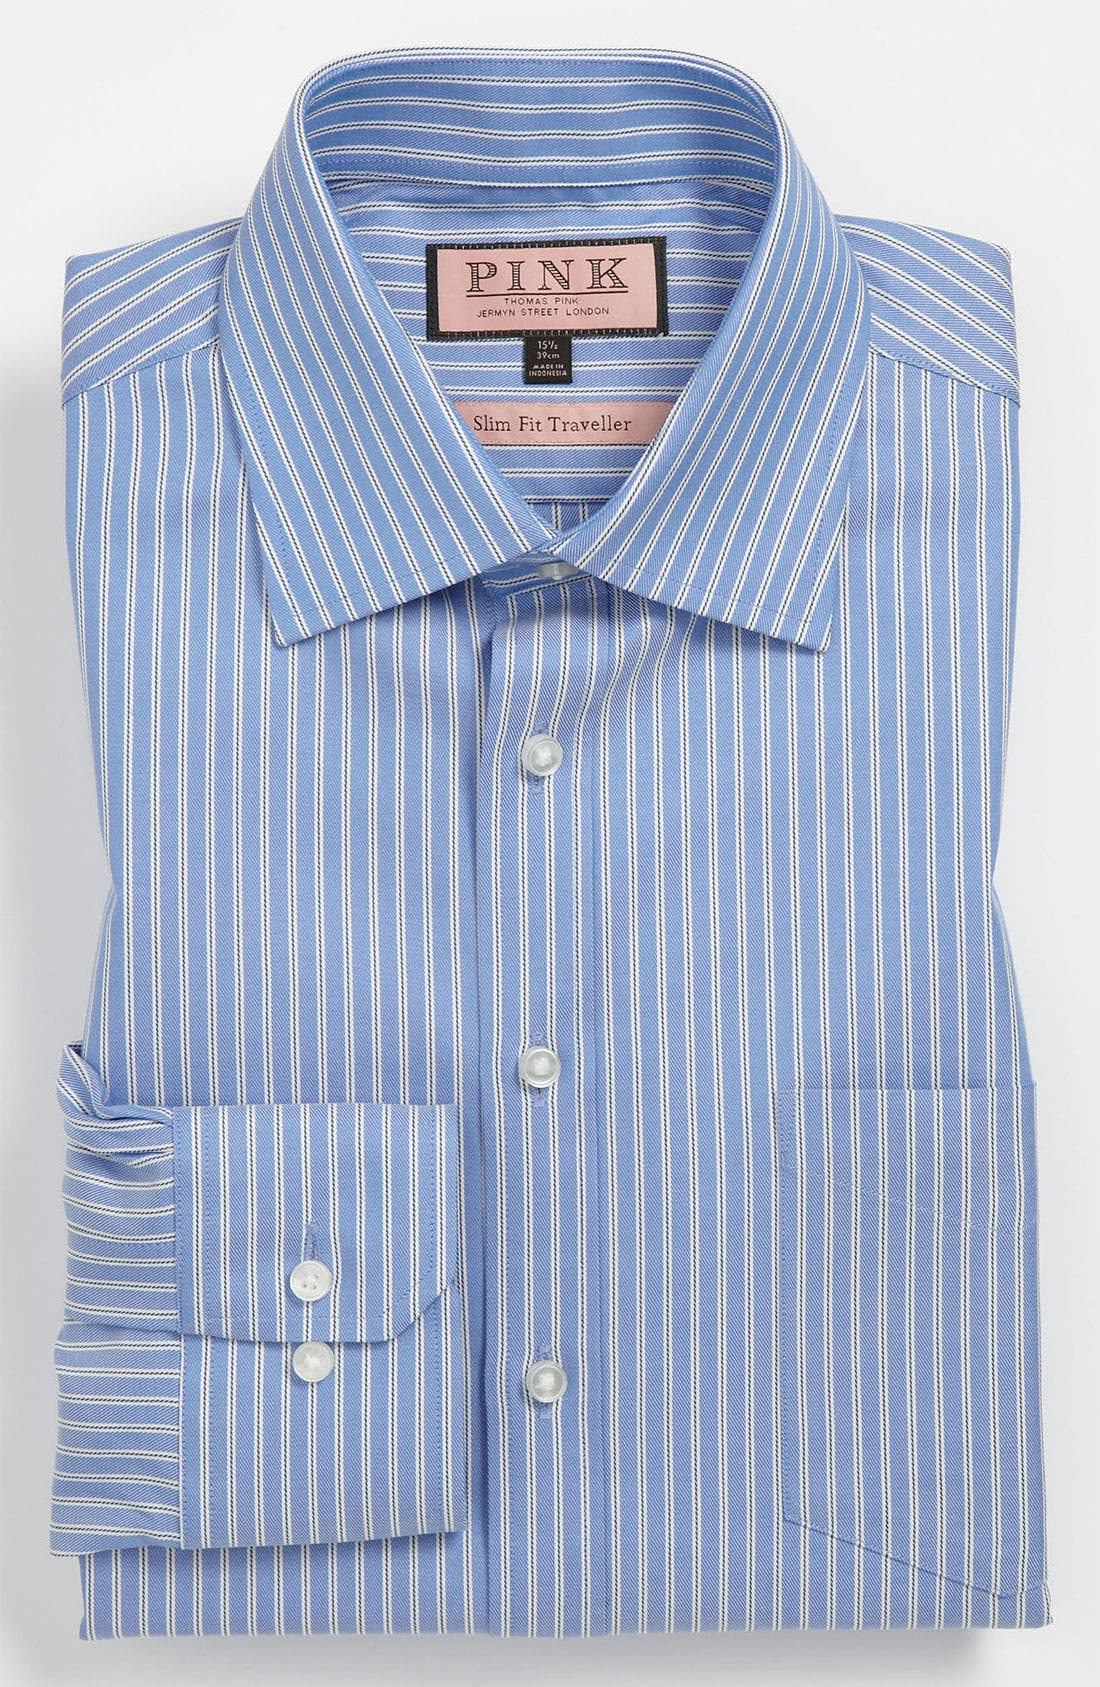 Main Image - Thomas Pink Slim Fit Traveller Dress Shirt